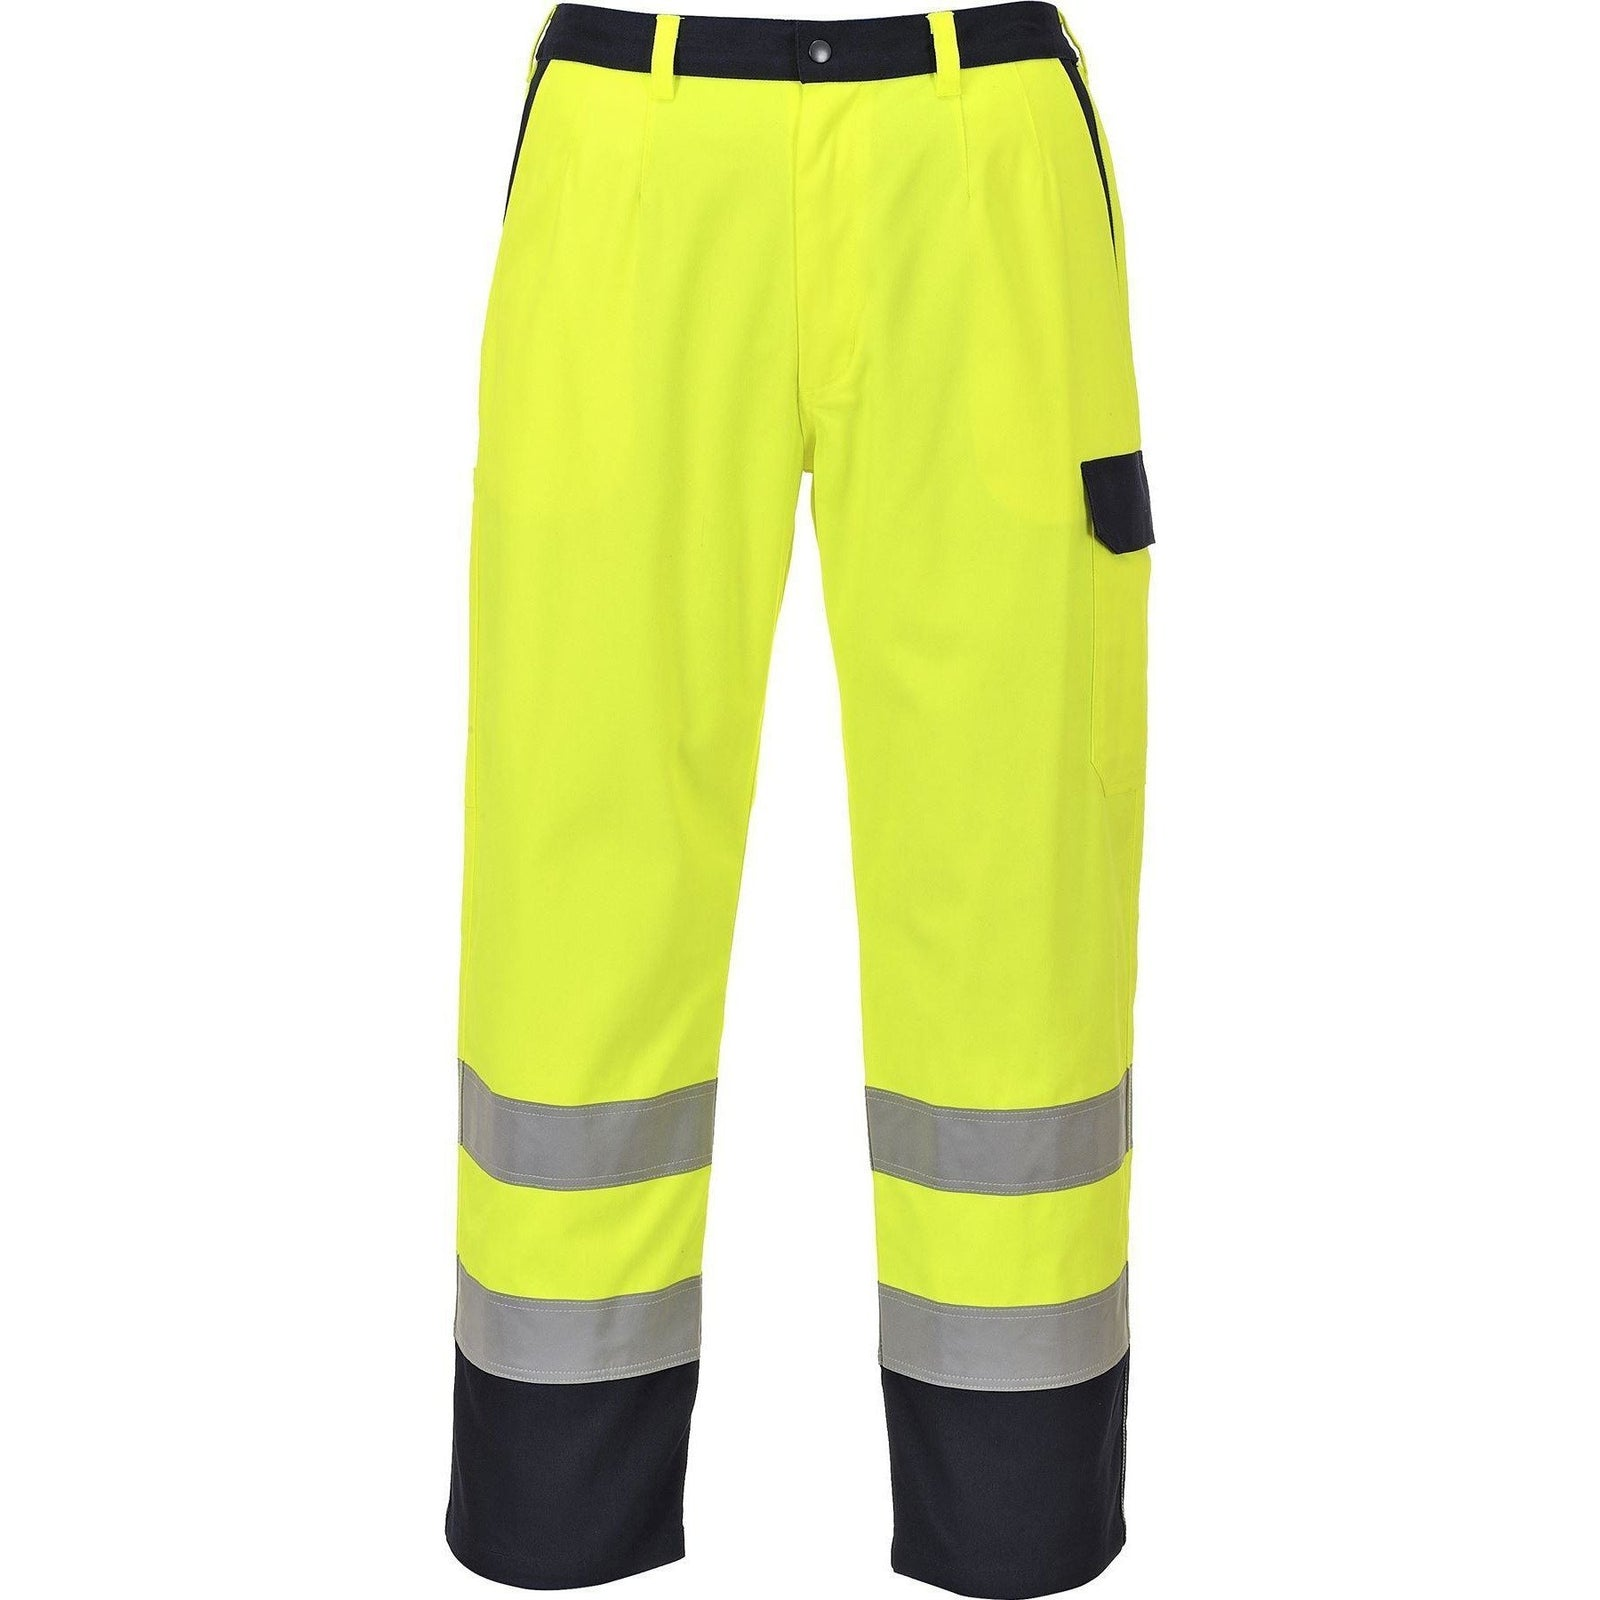 Portwest Hi Vis Bizflame Pro Trousers FR92 - reid outdoors